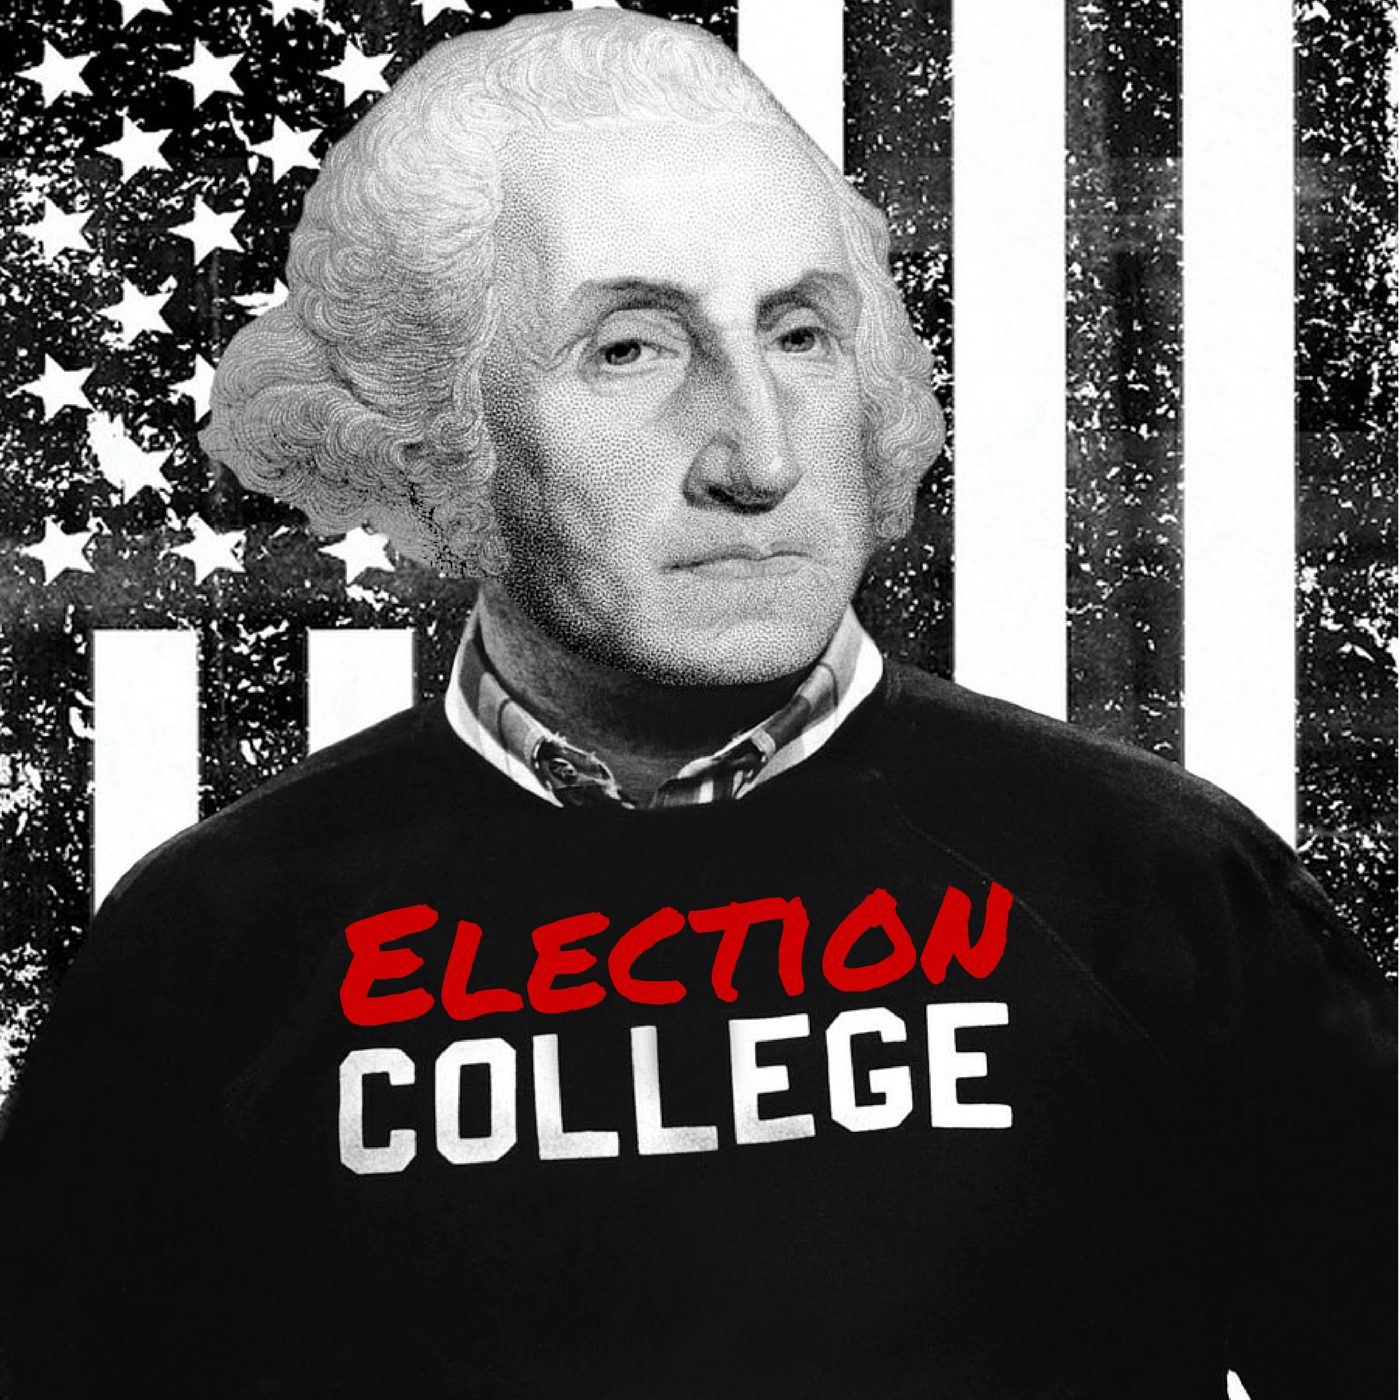 Reagan Gets A Shot - Election of 1980 | Episode #069 | Election College: United States Presidential Election History